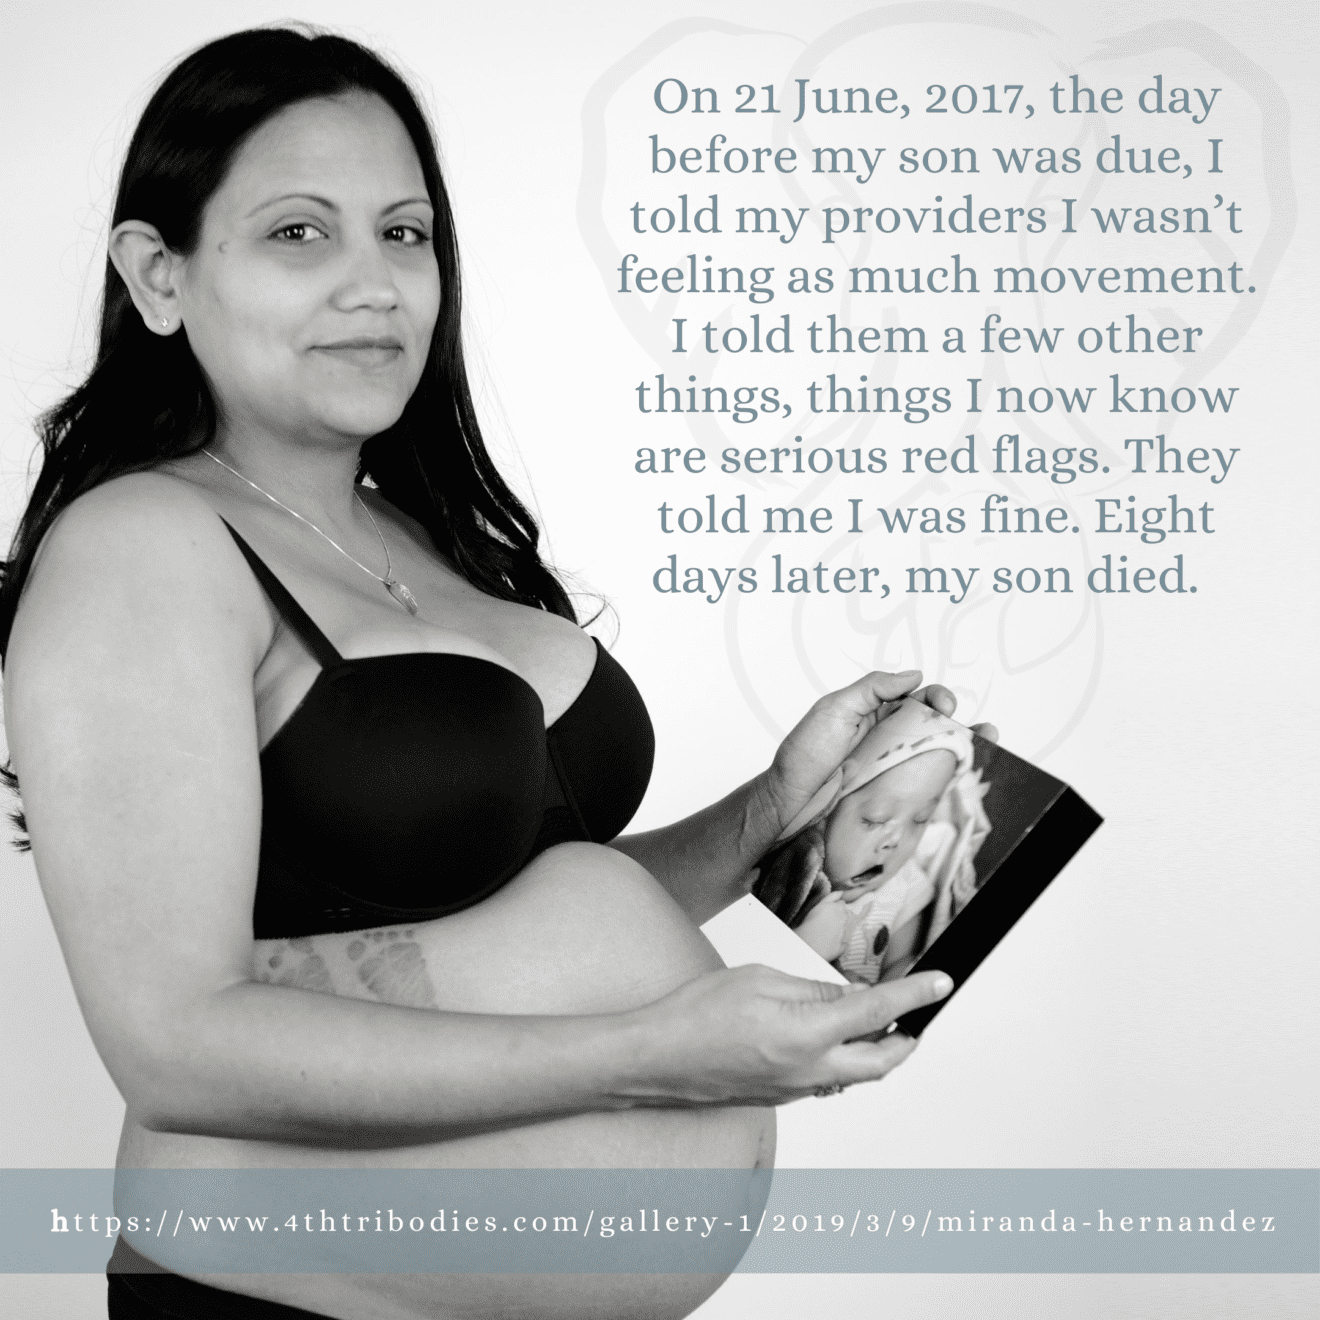 On 21 June, 2017, the day before my son was due, I told my providers I wasn't feeling as much movement. I told them a few other things, things I now know are serious red flags. They told me I was fine. Eight days later, my son died.